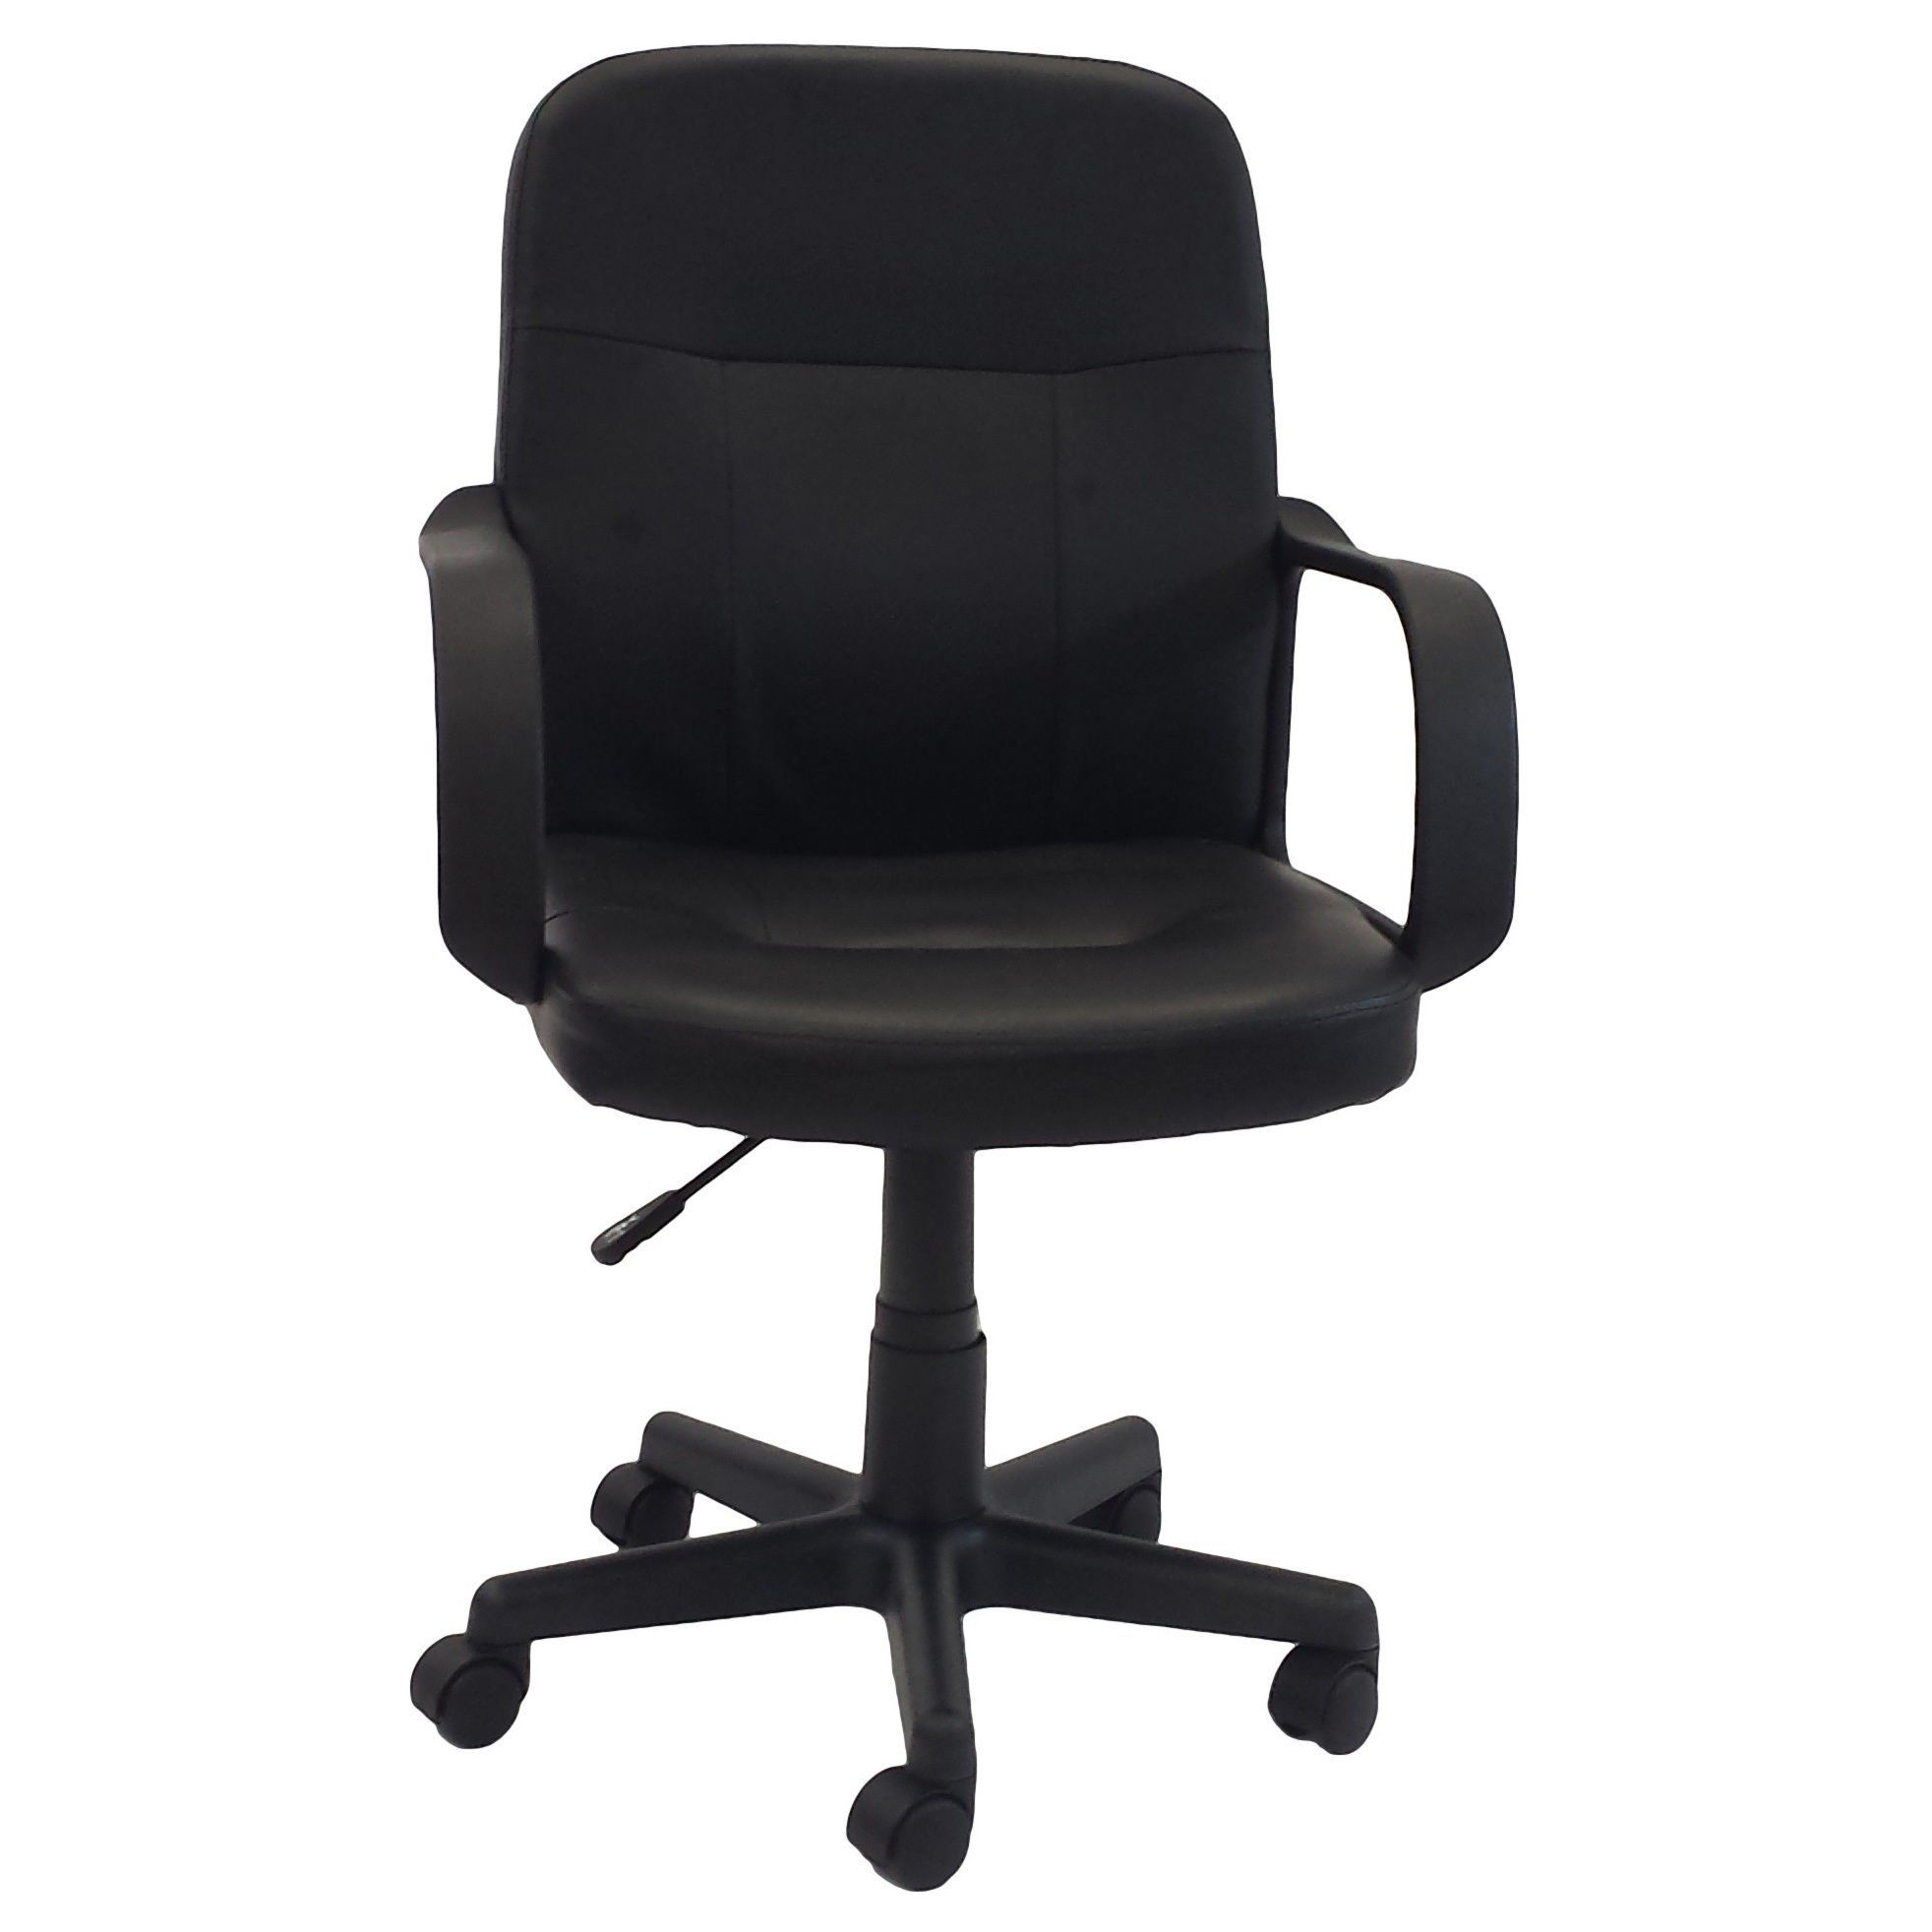 Black adjustable office chair great for both home and